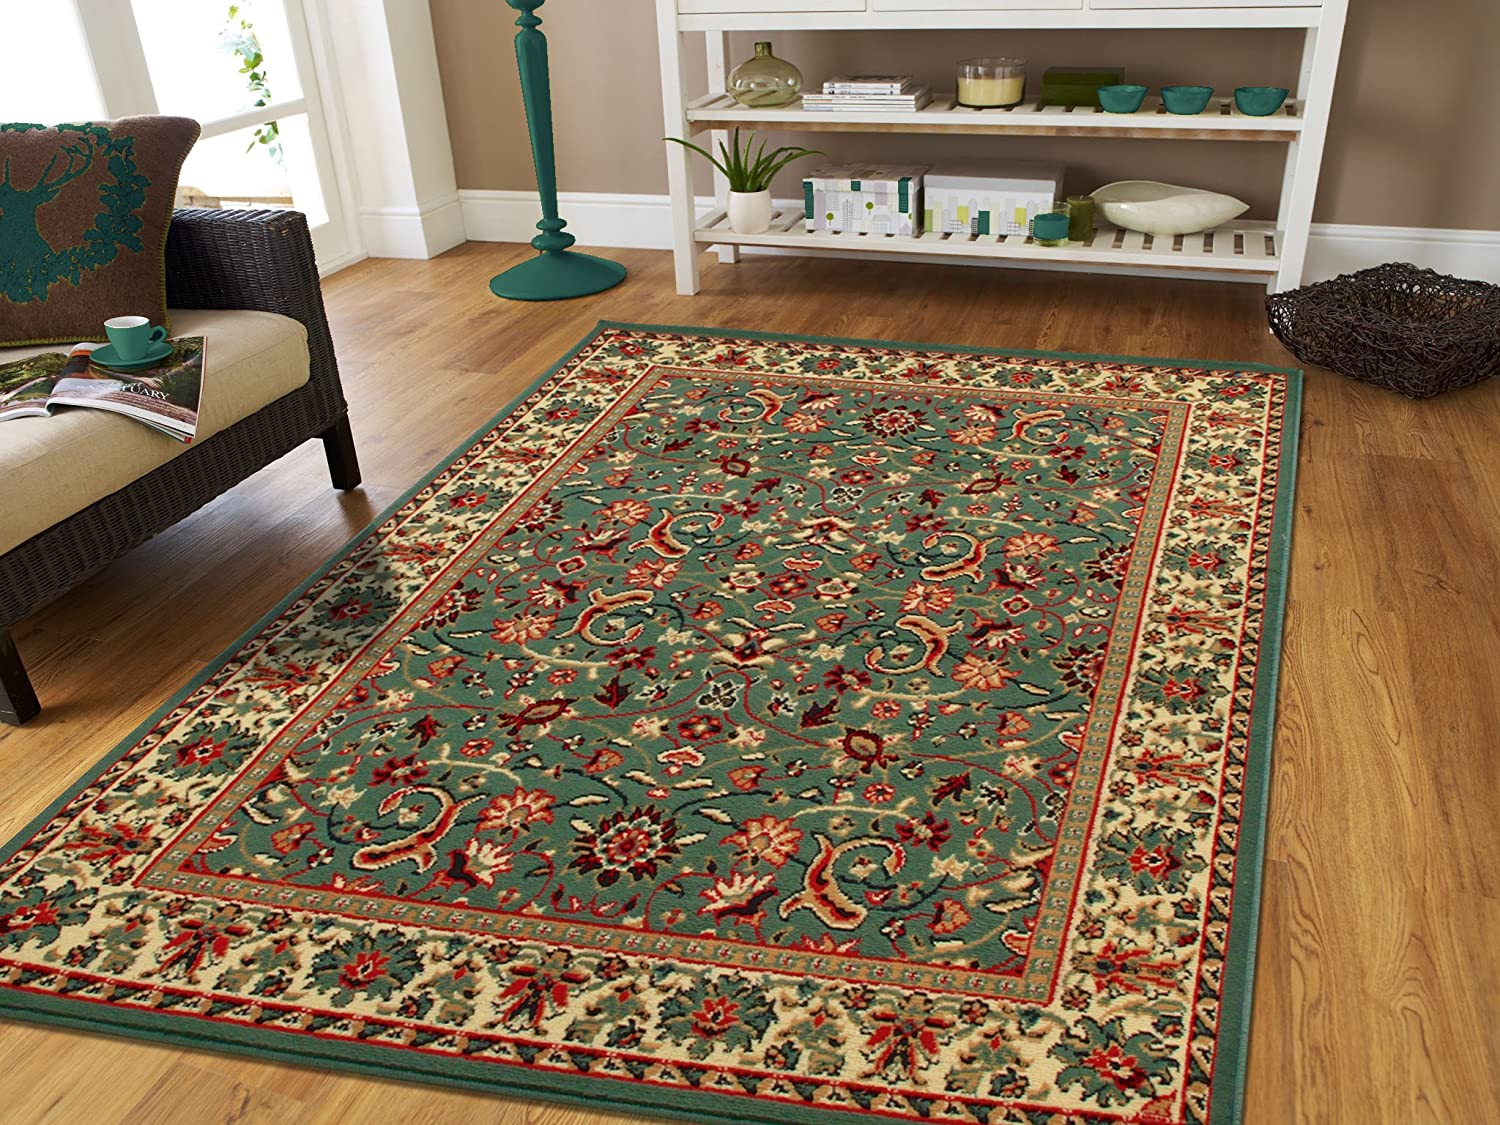 wrr under wanderer surya corner rug sale area style southwestern rugs for